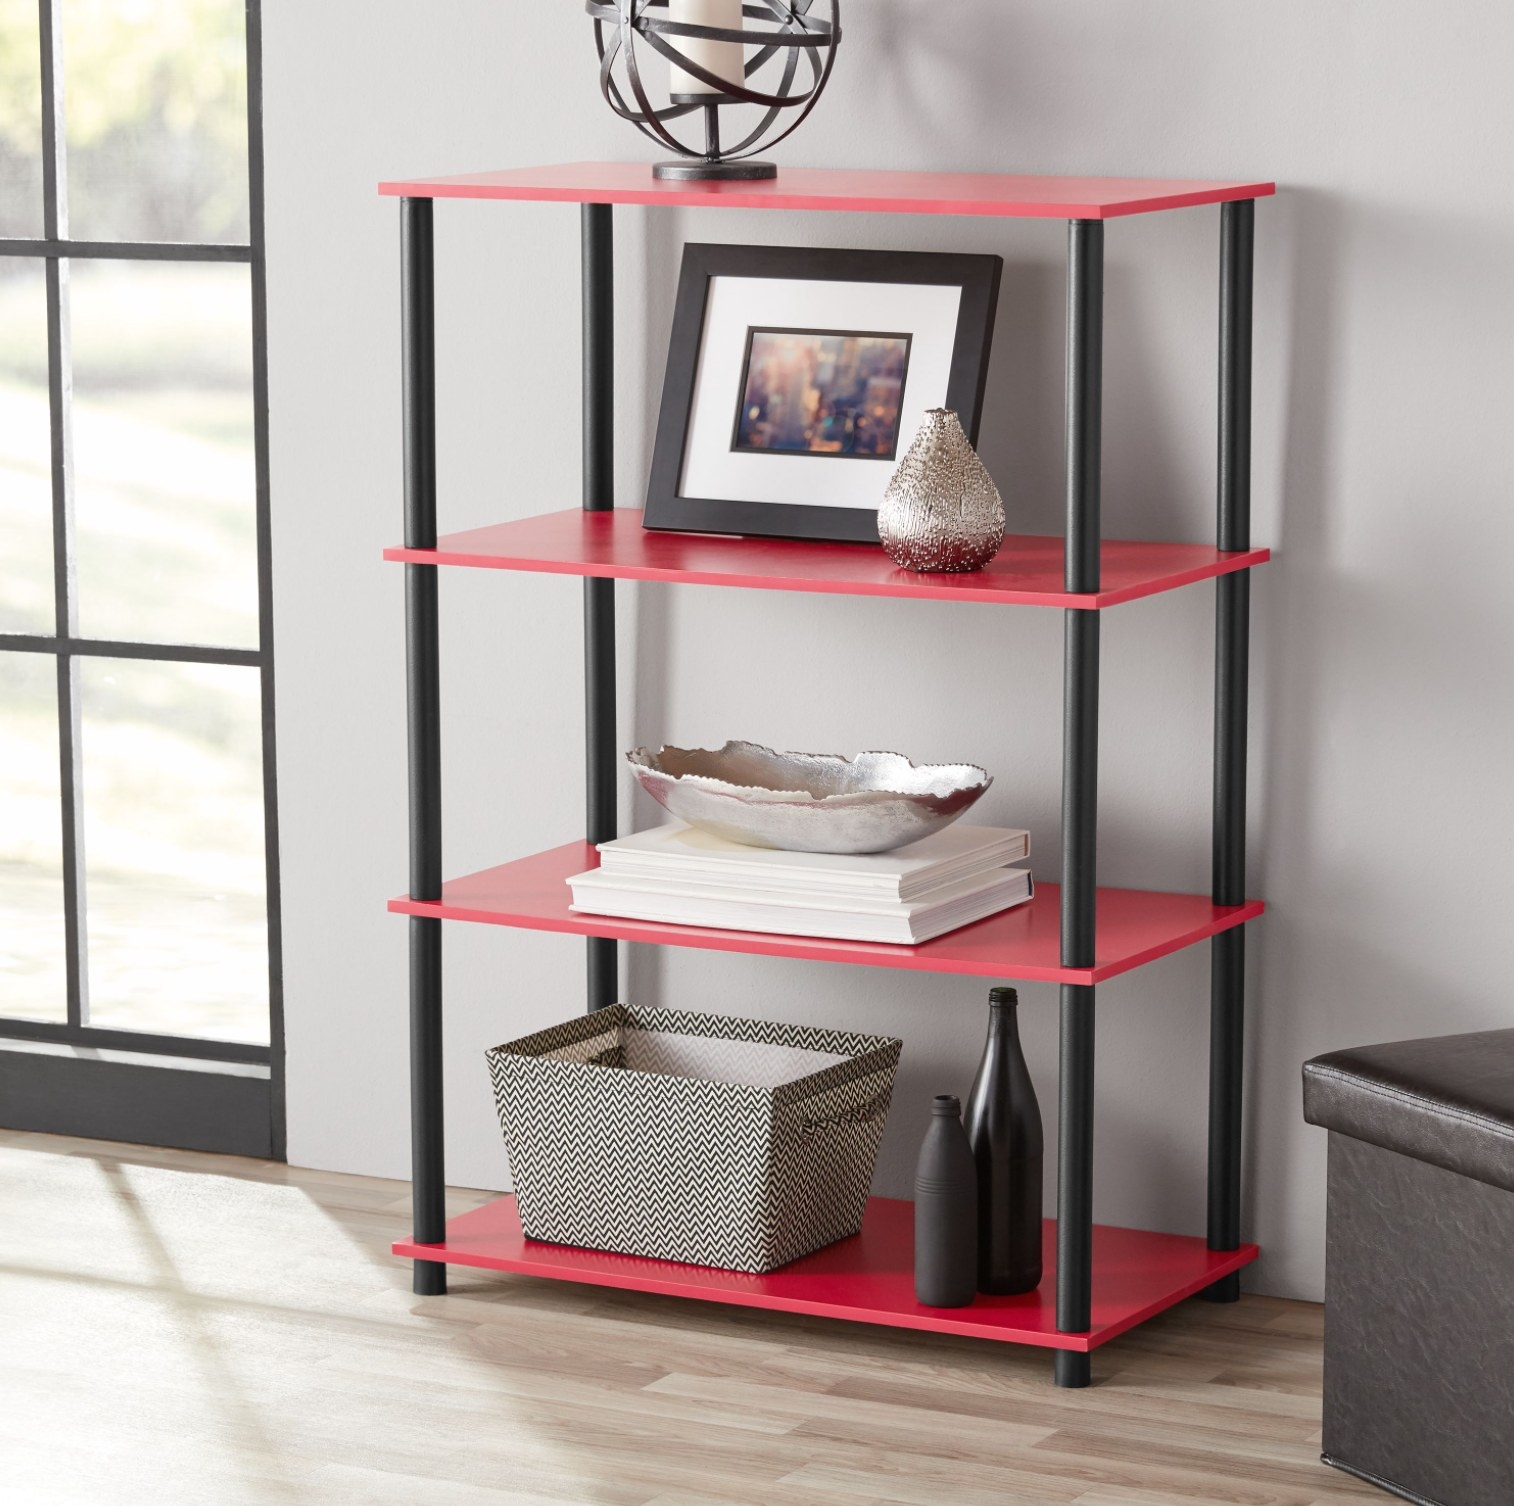 The shelves in red